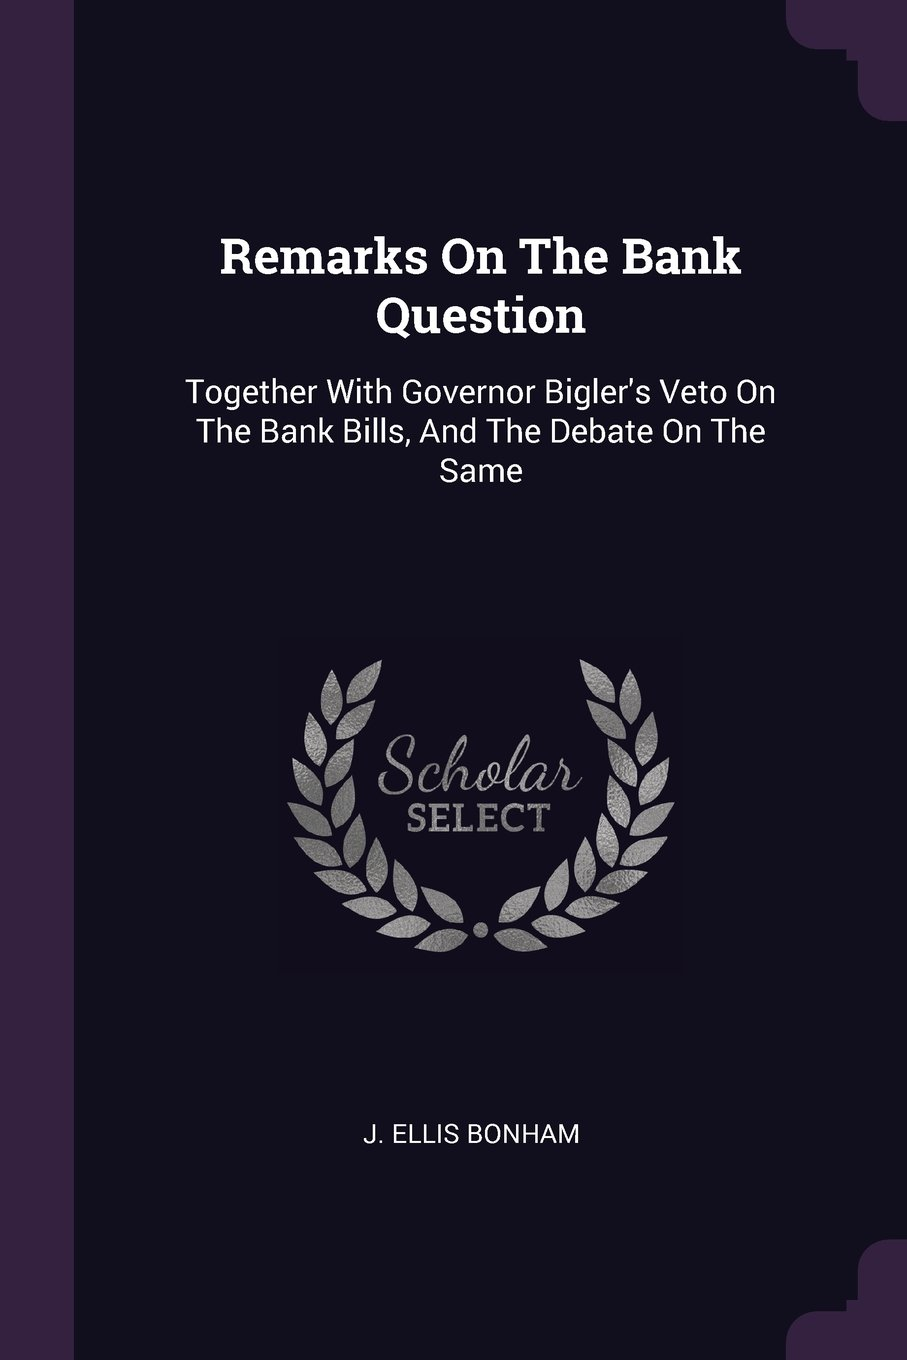 Remarks On The Bank Question: Together With Governor Bigler's Veto On The Bank Bills, And The Debate On The Same ebook